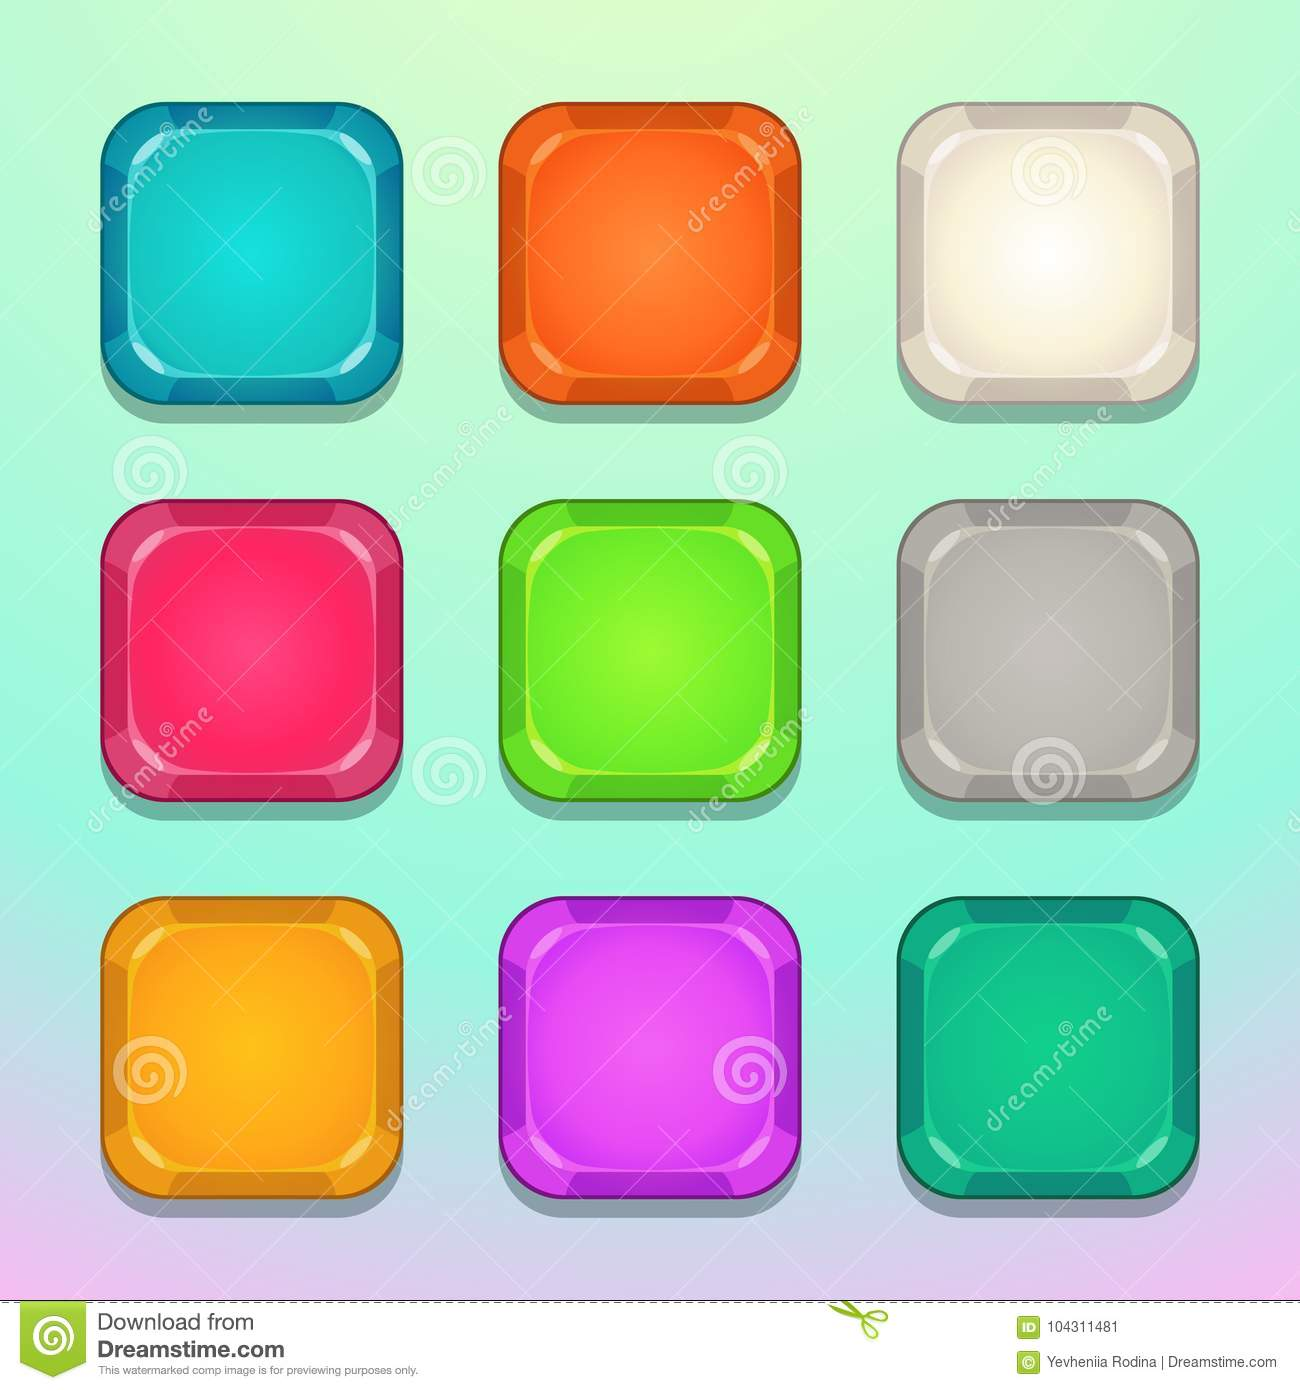 Colorful Square Buttons Set  Stock Vector - Illustration of